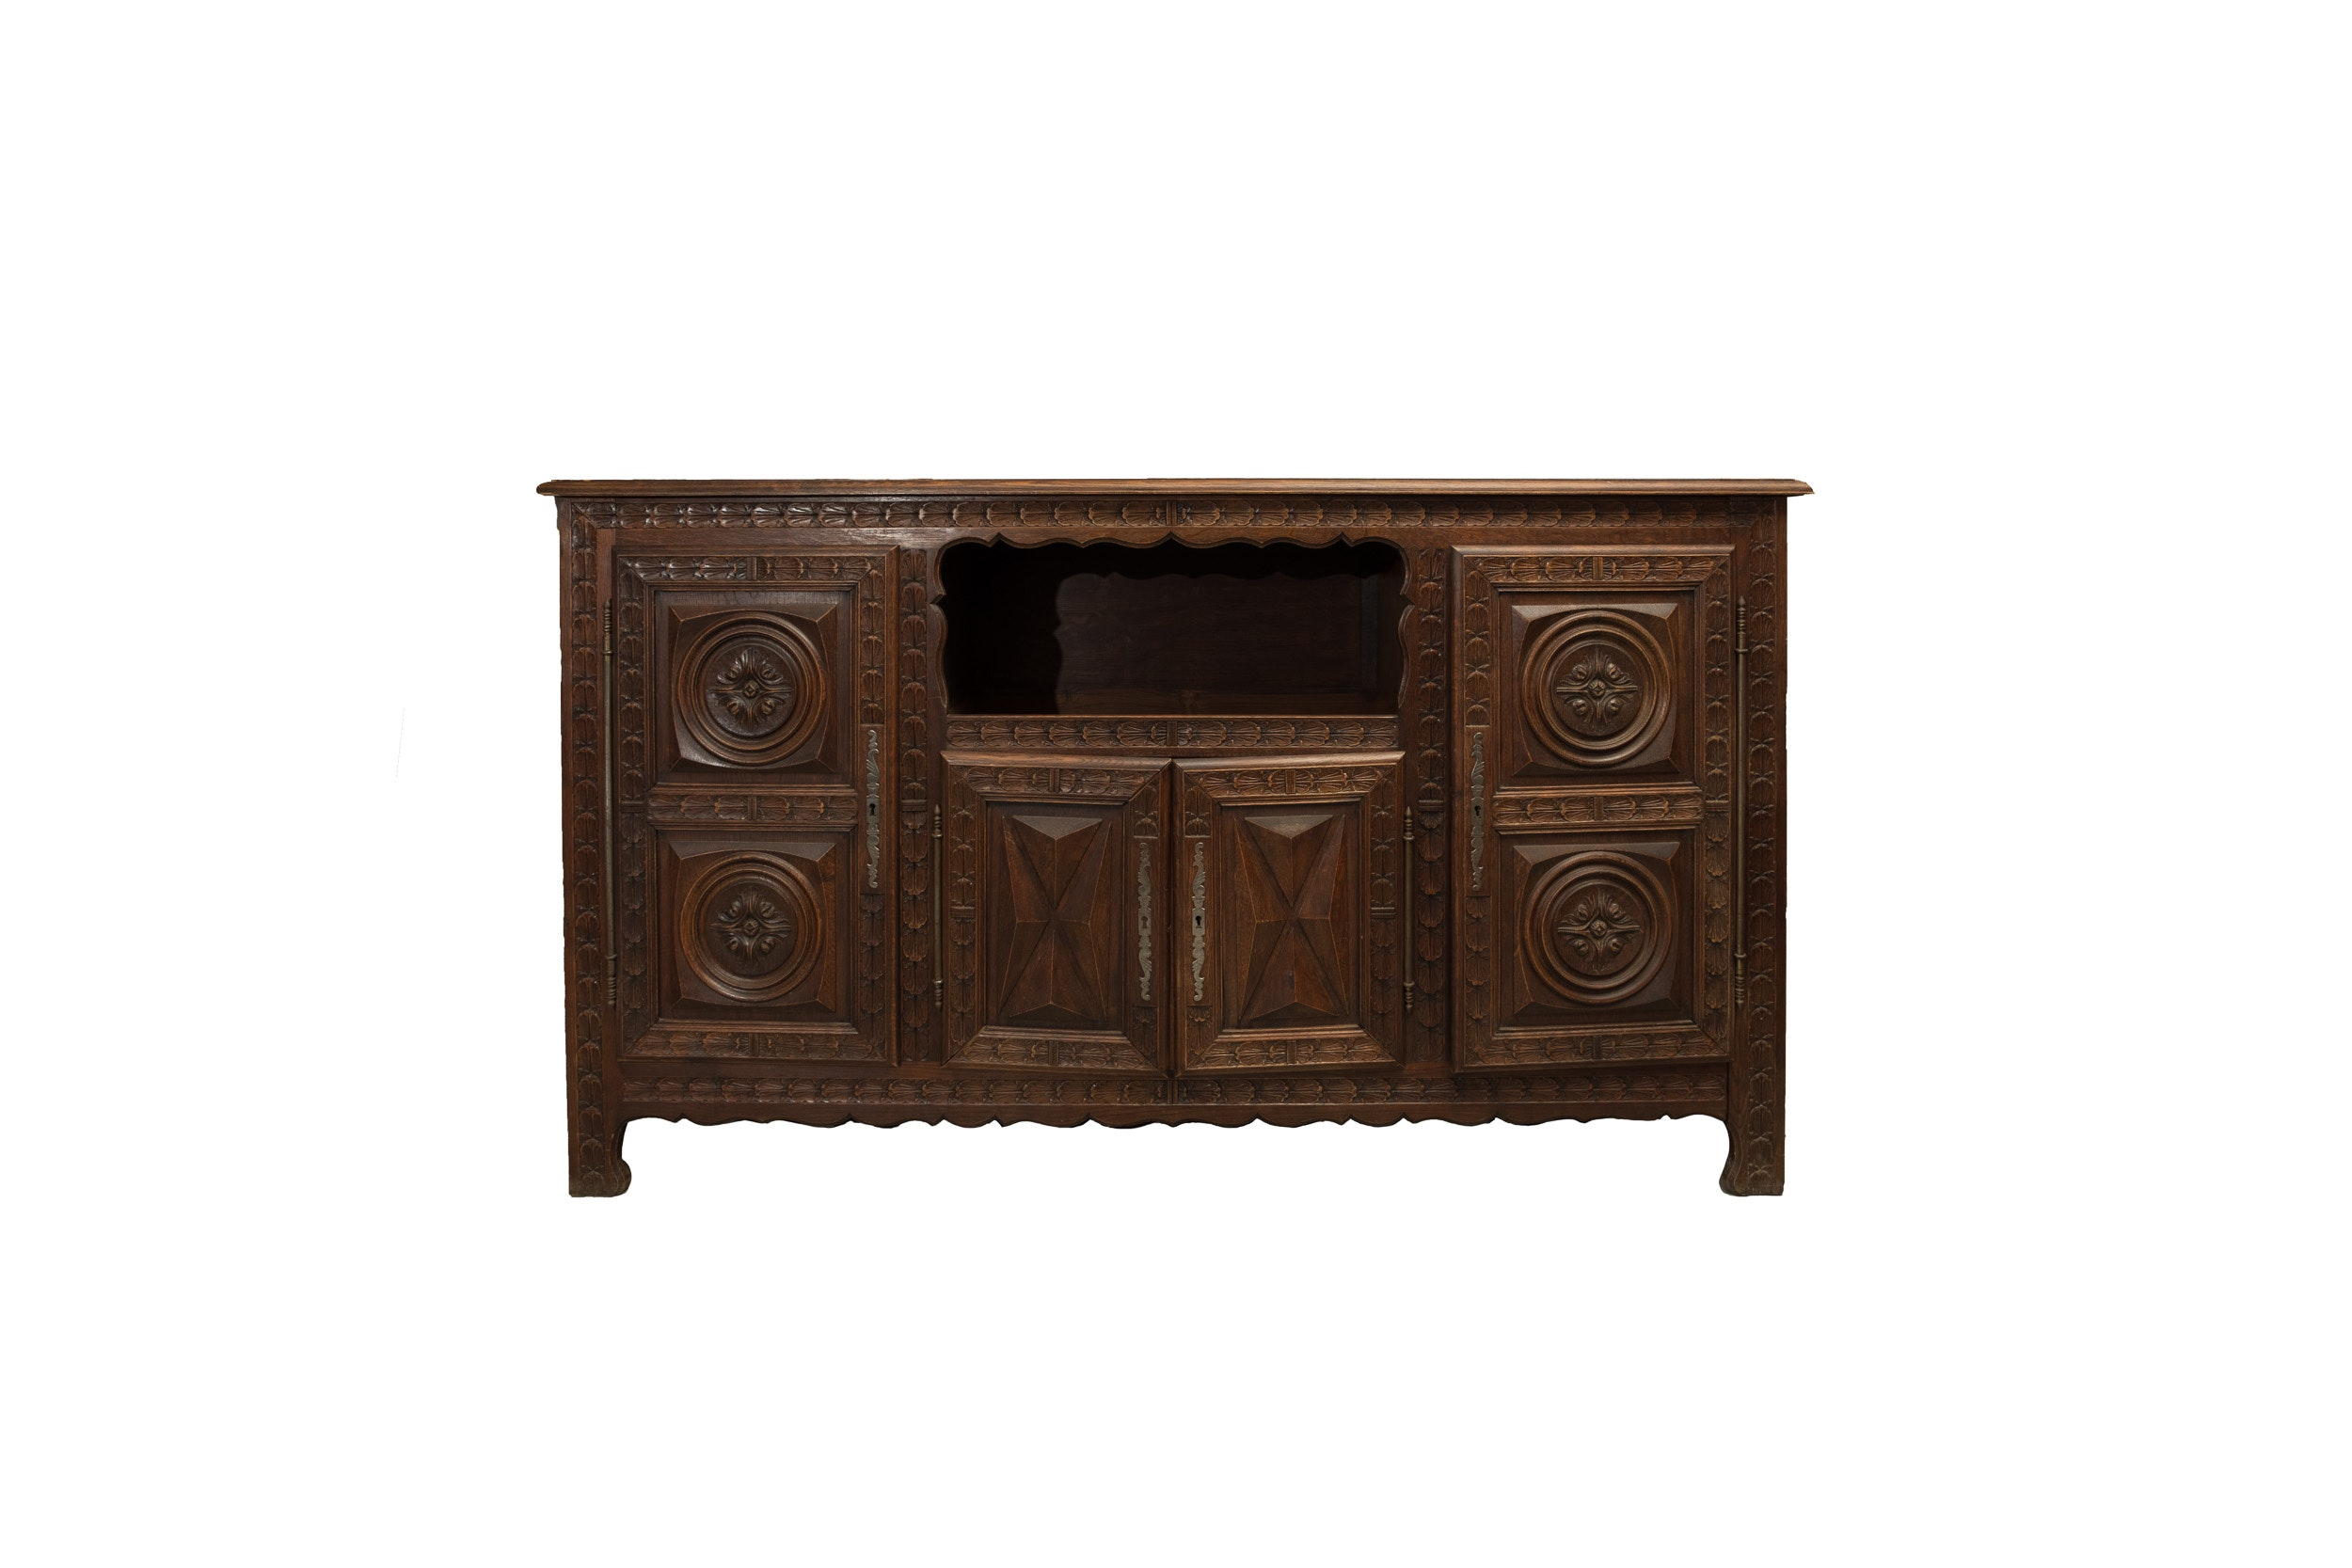 Vintage French Renaissance Style Carved Oak Cabinet